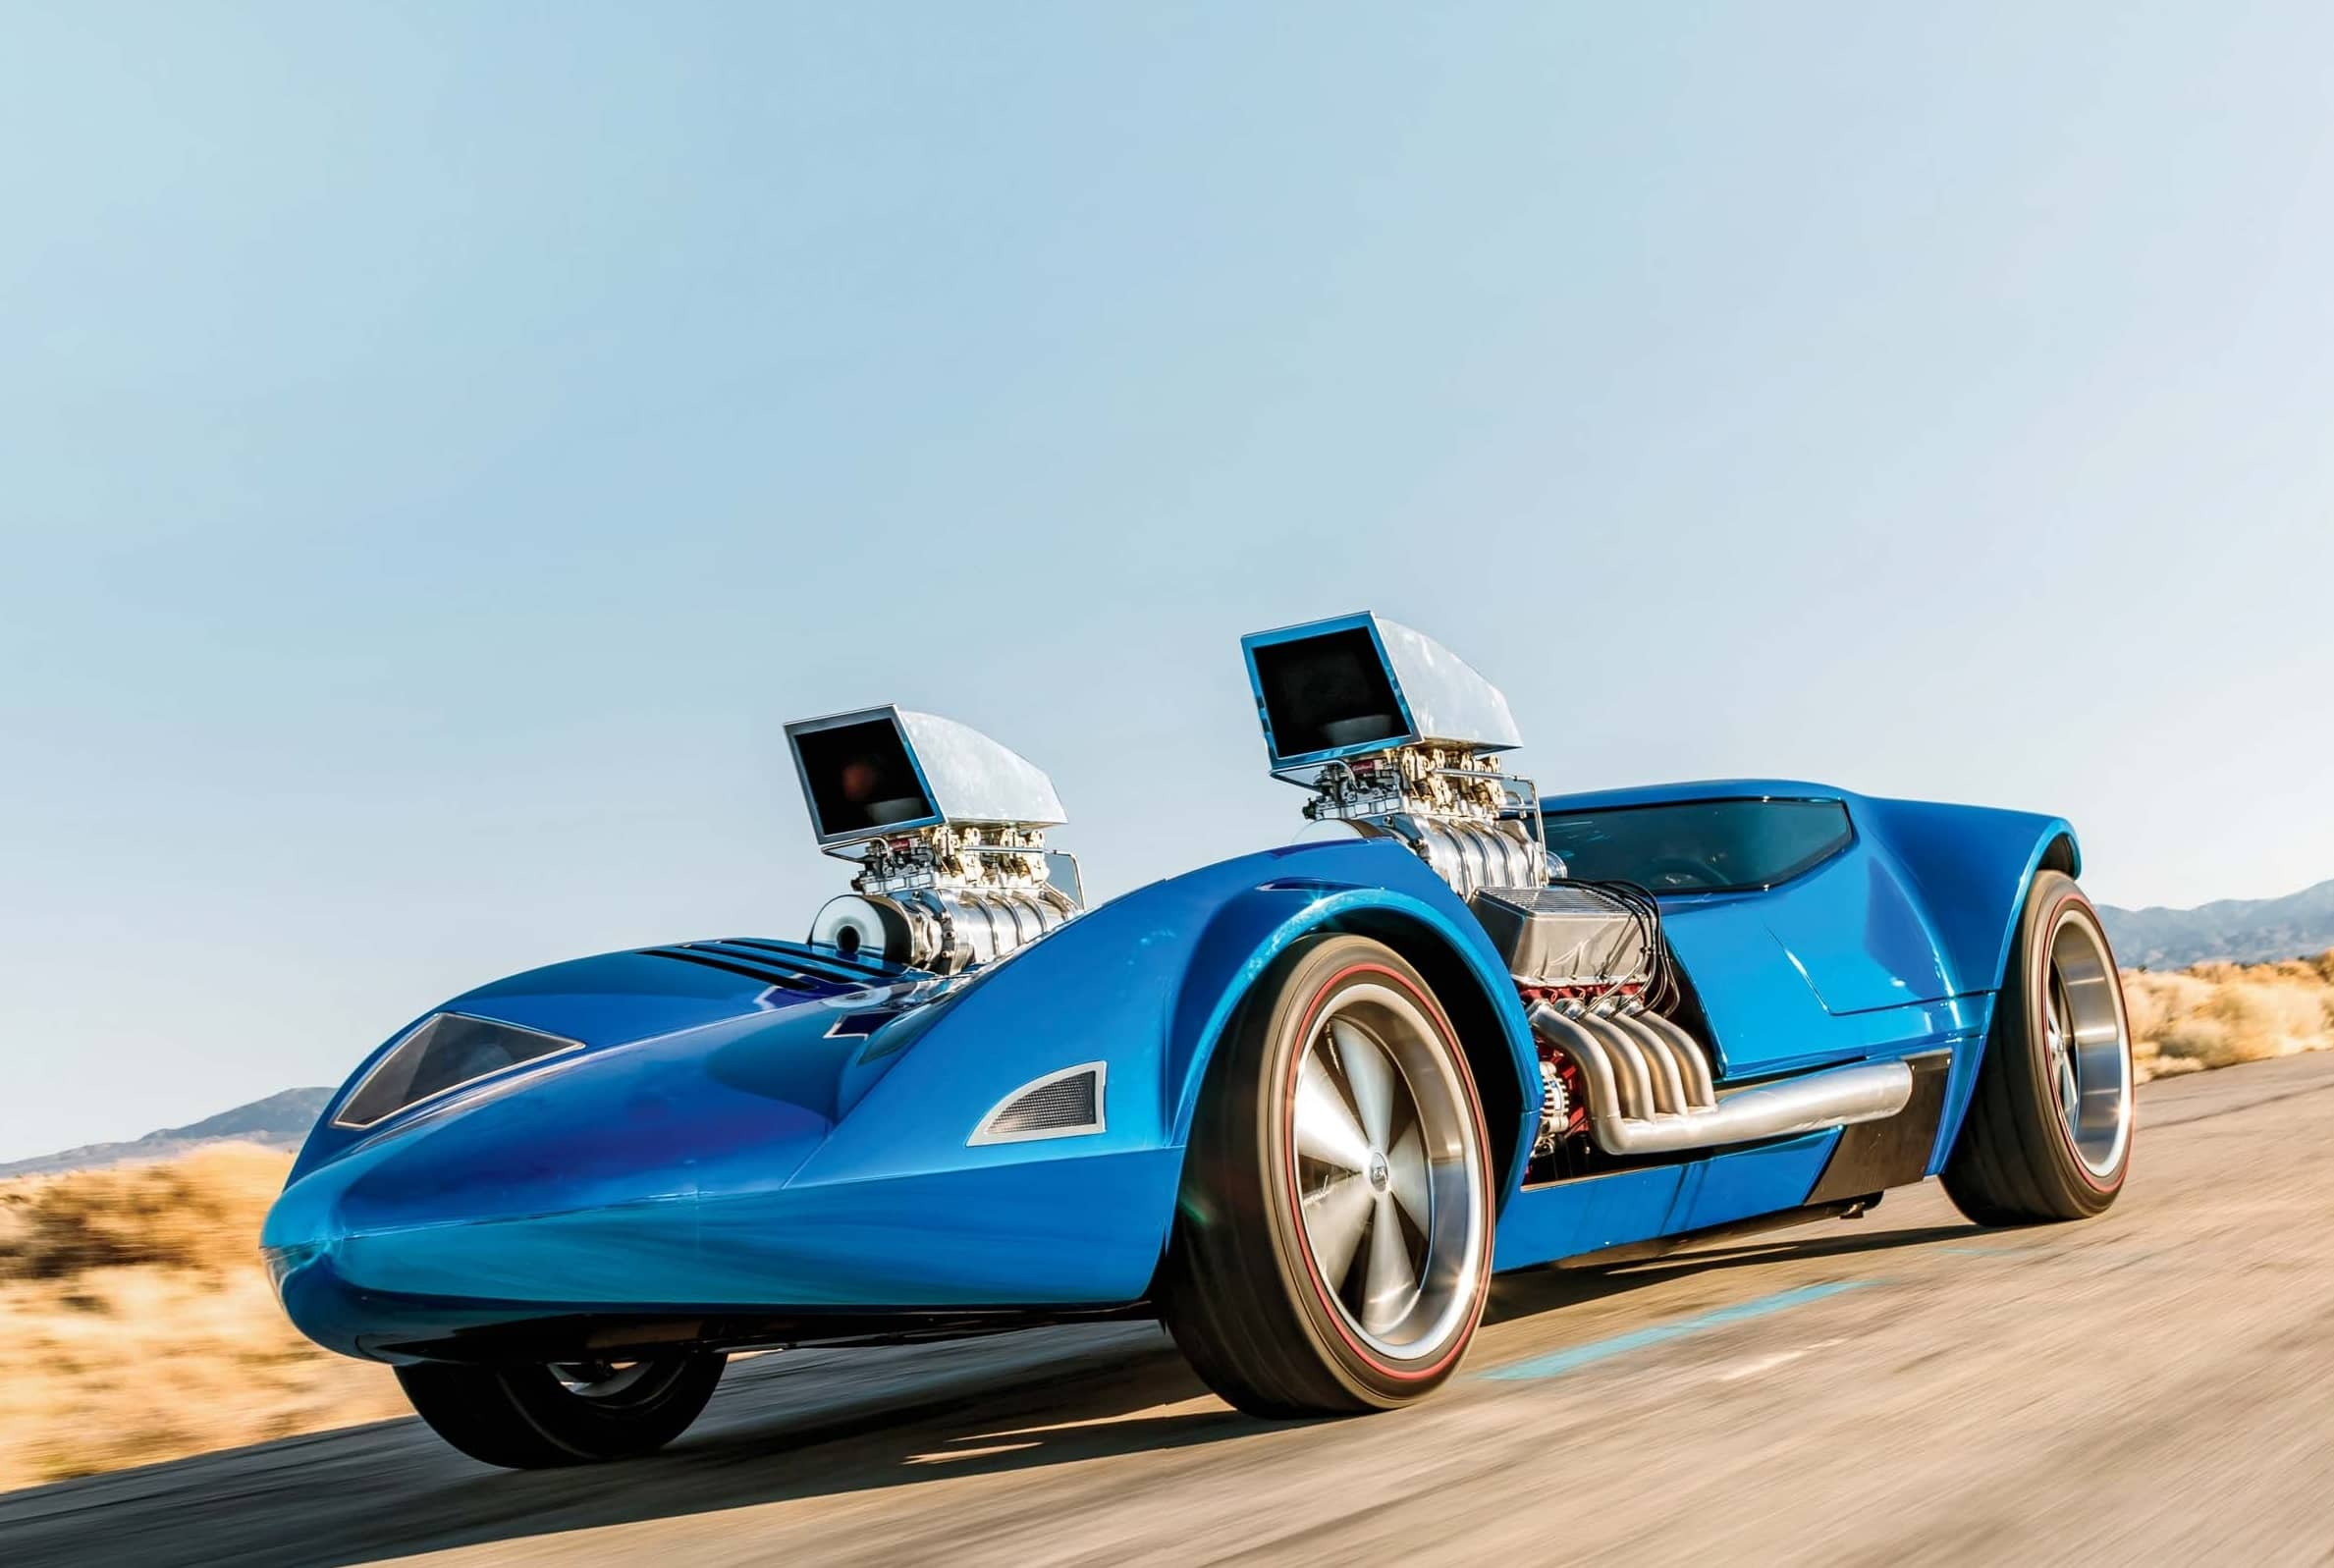 THE REAL-LIFE CRAZY CARS THAT INSPIRED THE ORIGINAL HOT WHEELS